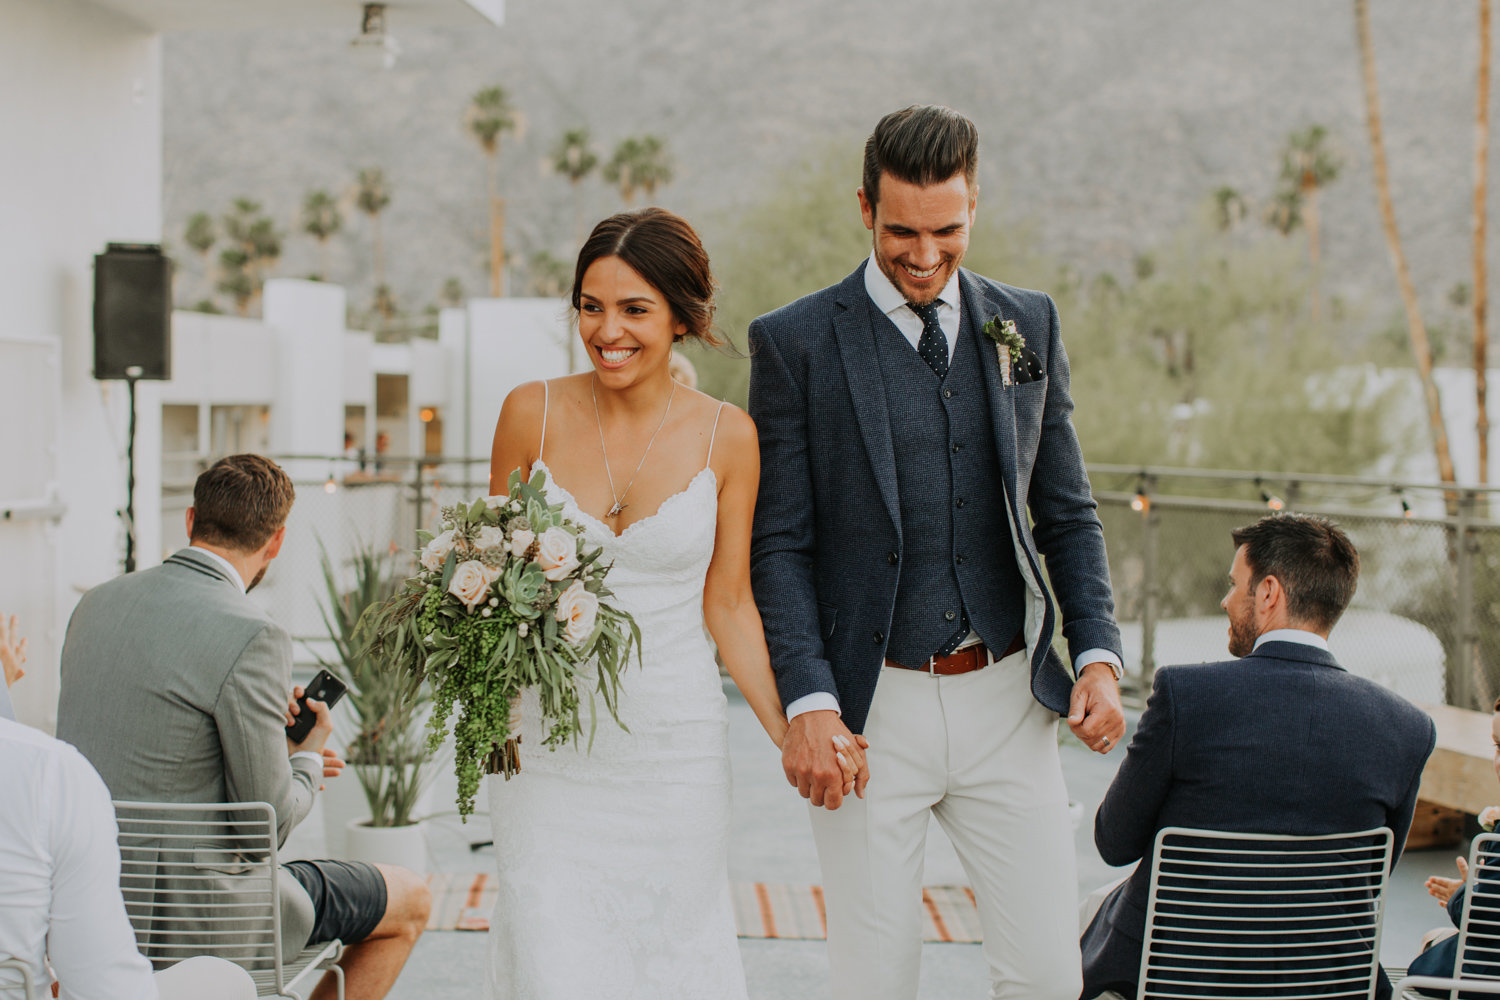 Brianna Broyles_Palm Springs Wedding Photographer_Ace Hotel Wedding_Ace Hotel Palm Springs-56